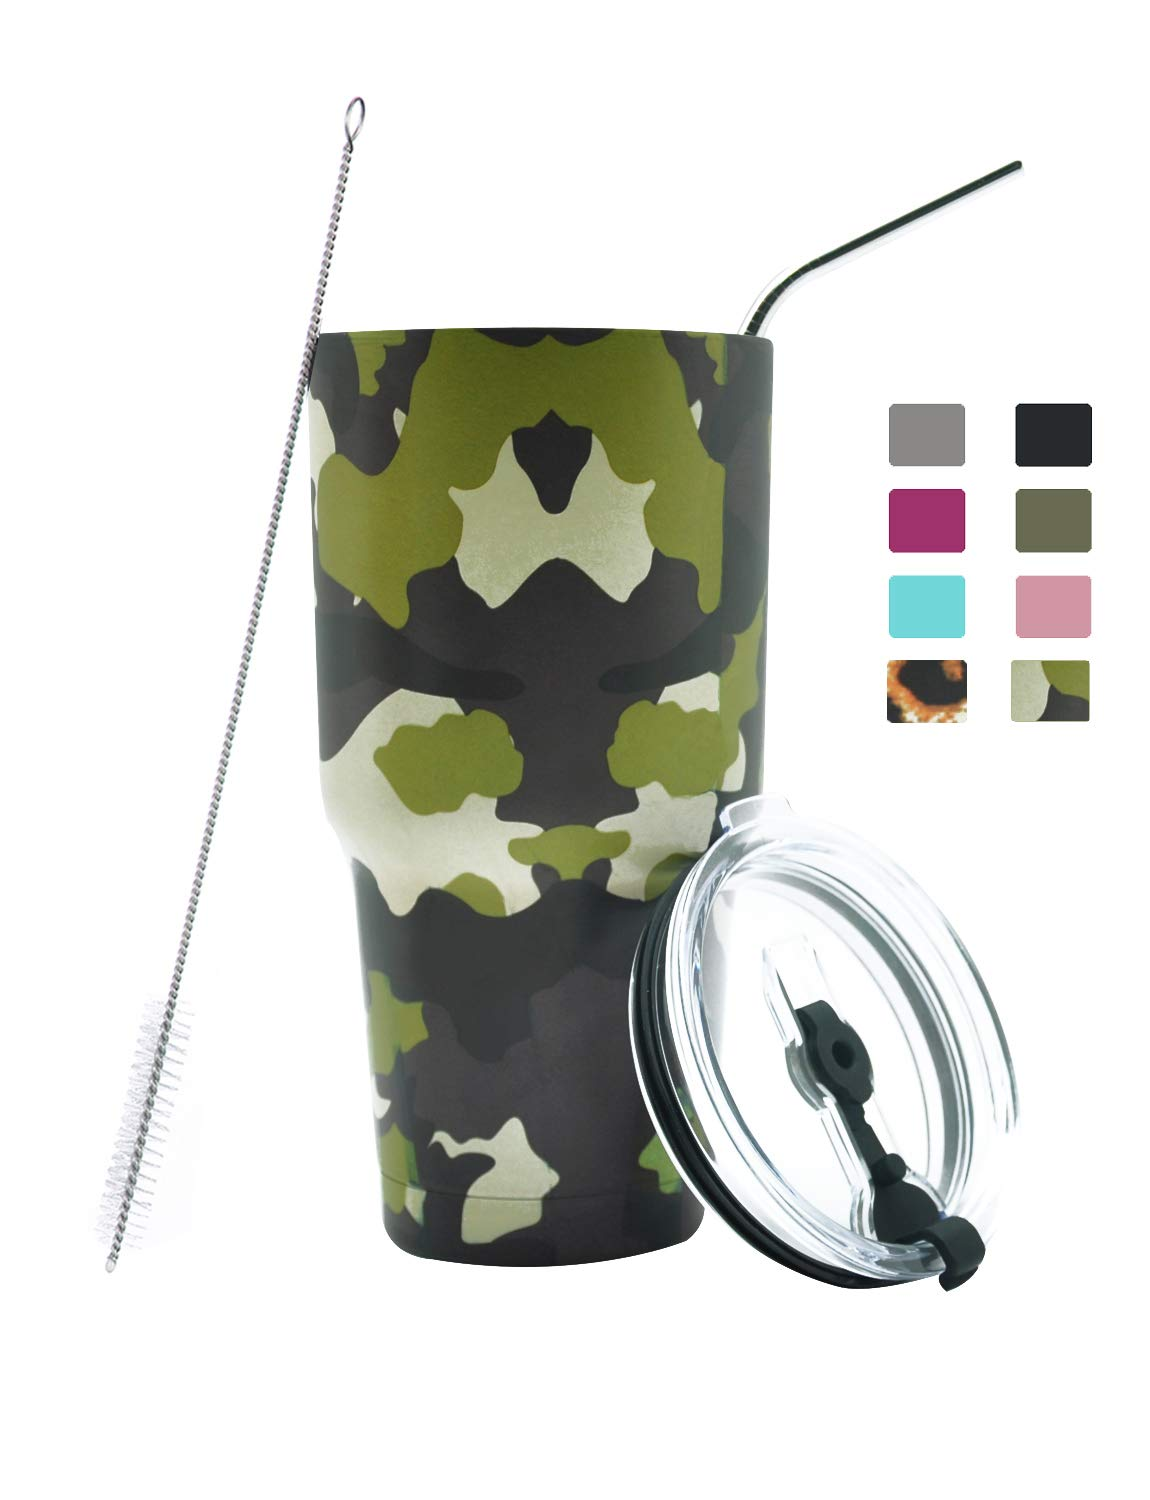 DYNAMIC SE 30oz Tumbler Double Wall Stainless Steel Vacuum Insulated Travel Mug with Splash-Proof Lid Metal Straw and Brush (Camo)